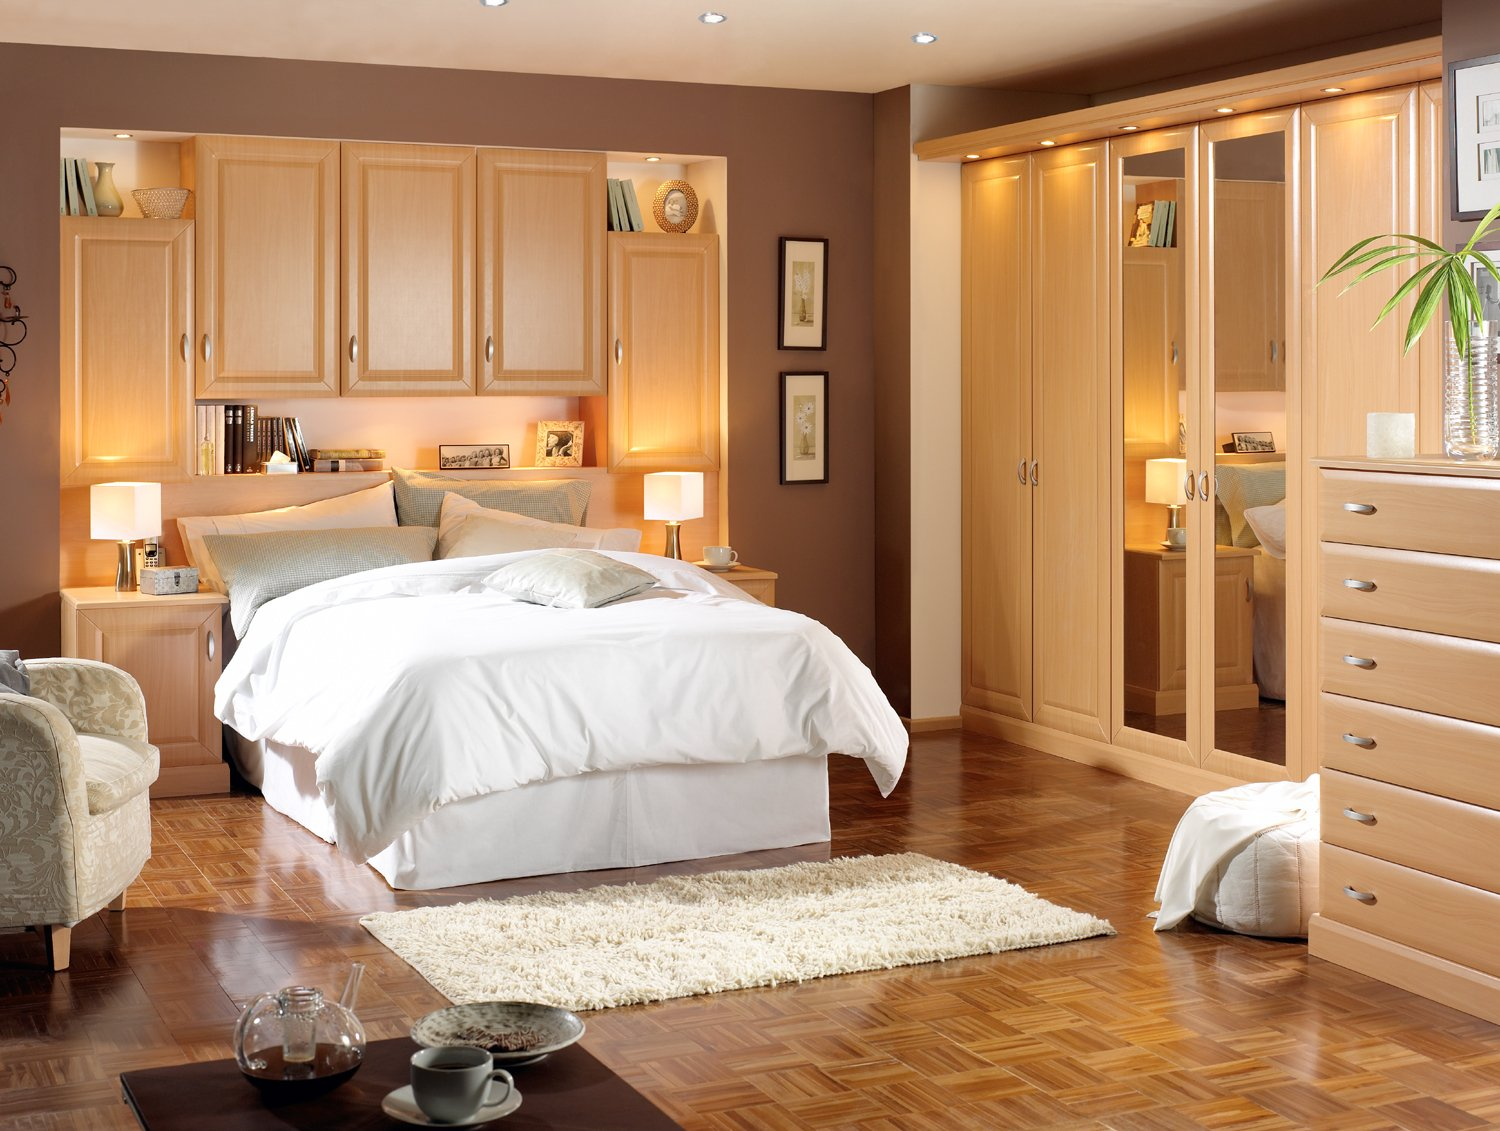 Bedrooms cupboard designs pictures an interior design for Interior designs cupboards